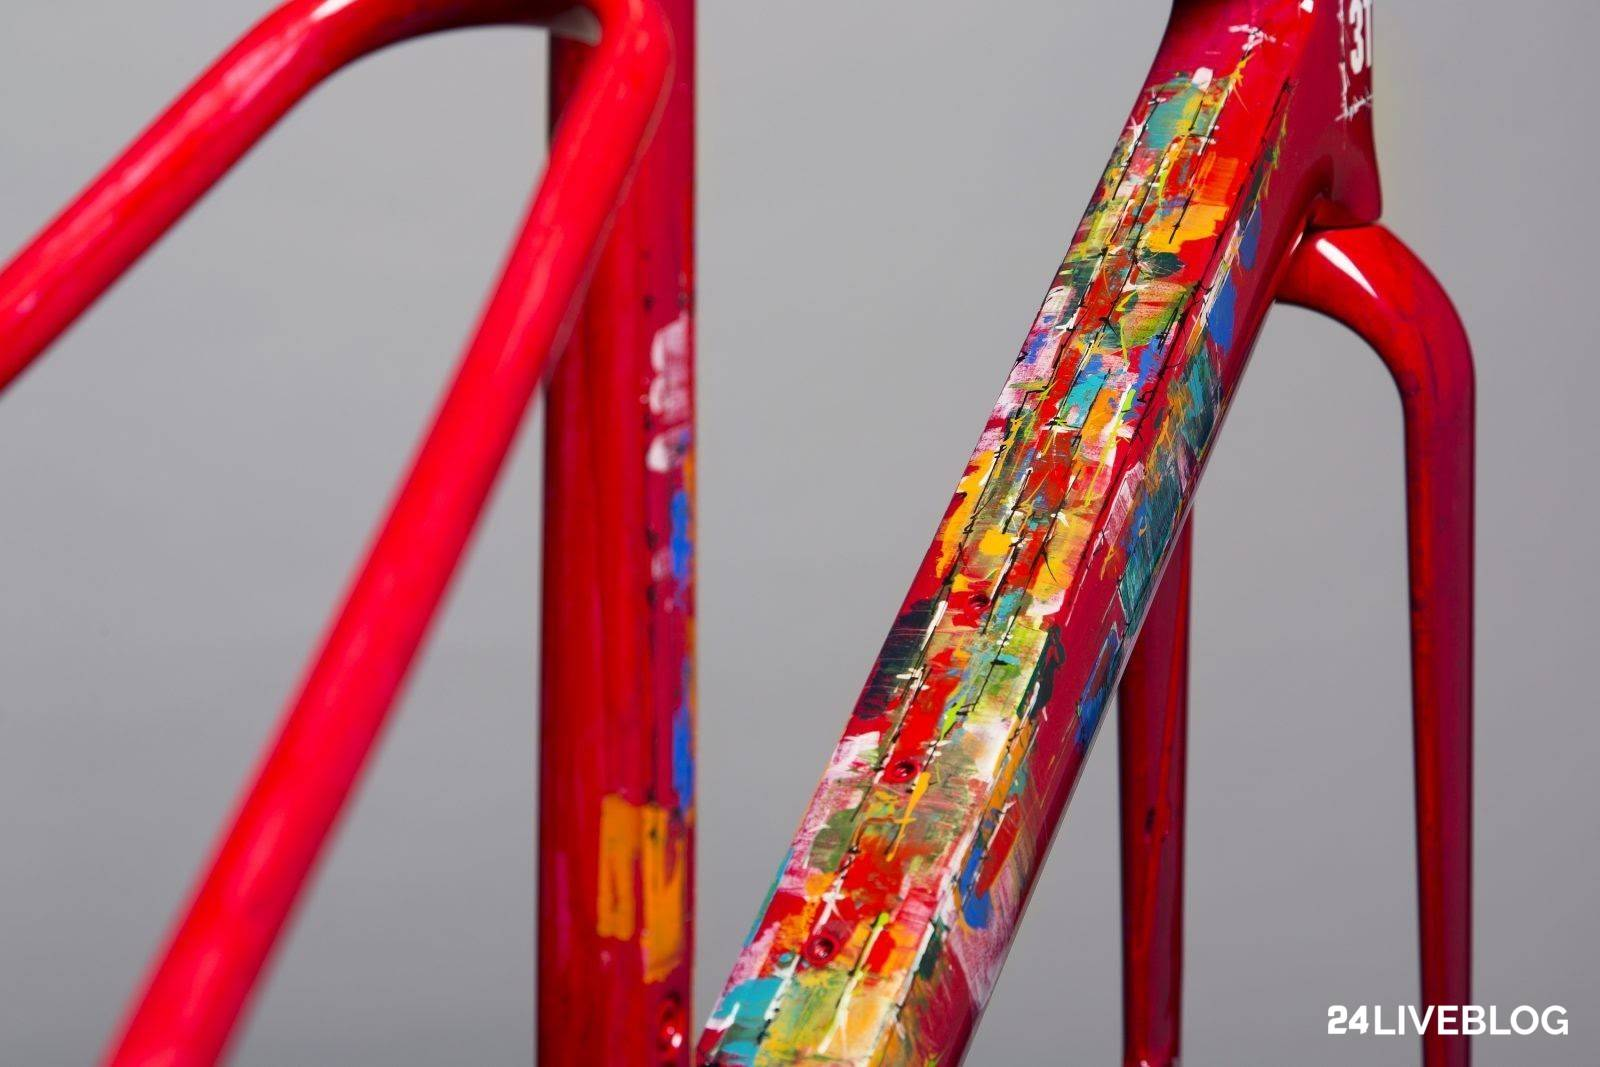 Masked thieves steal 20+ bikes including unique frame painted by Dario  Pegoretti in raid on3T aa26bc0b9